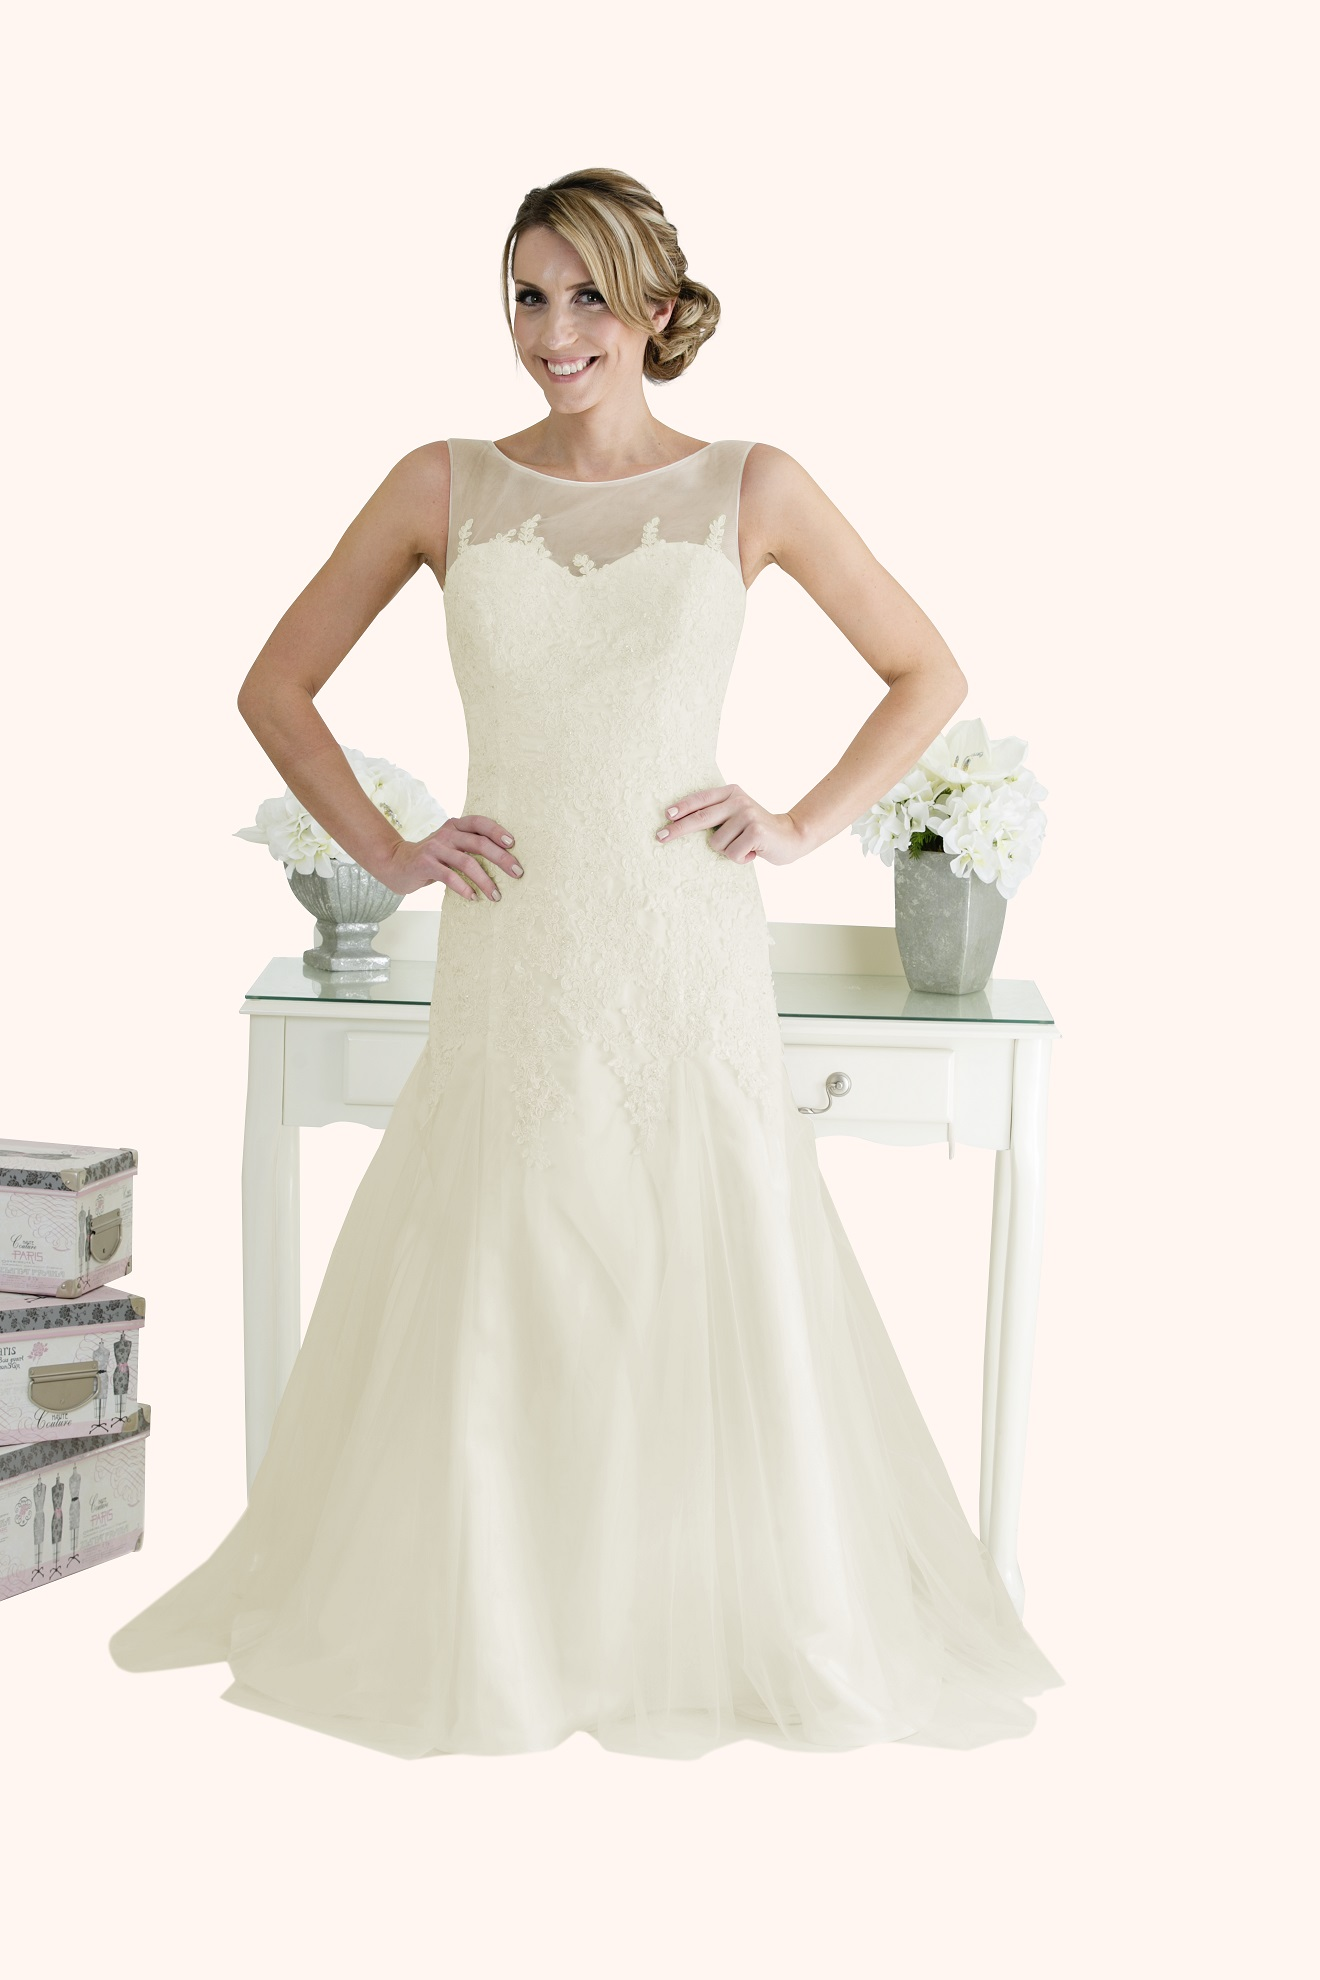 Wedding Dress Sample Sale Milton Keynes Estilo Moda Bridal